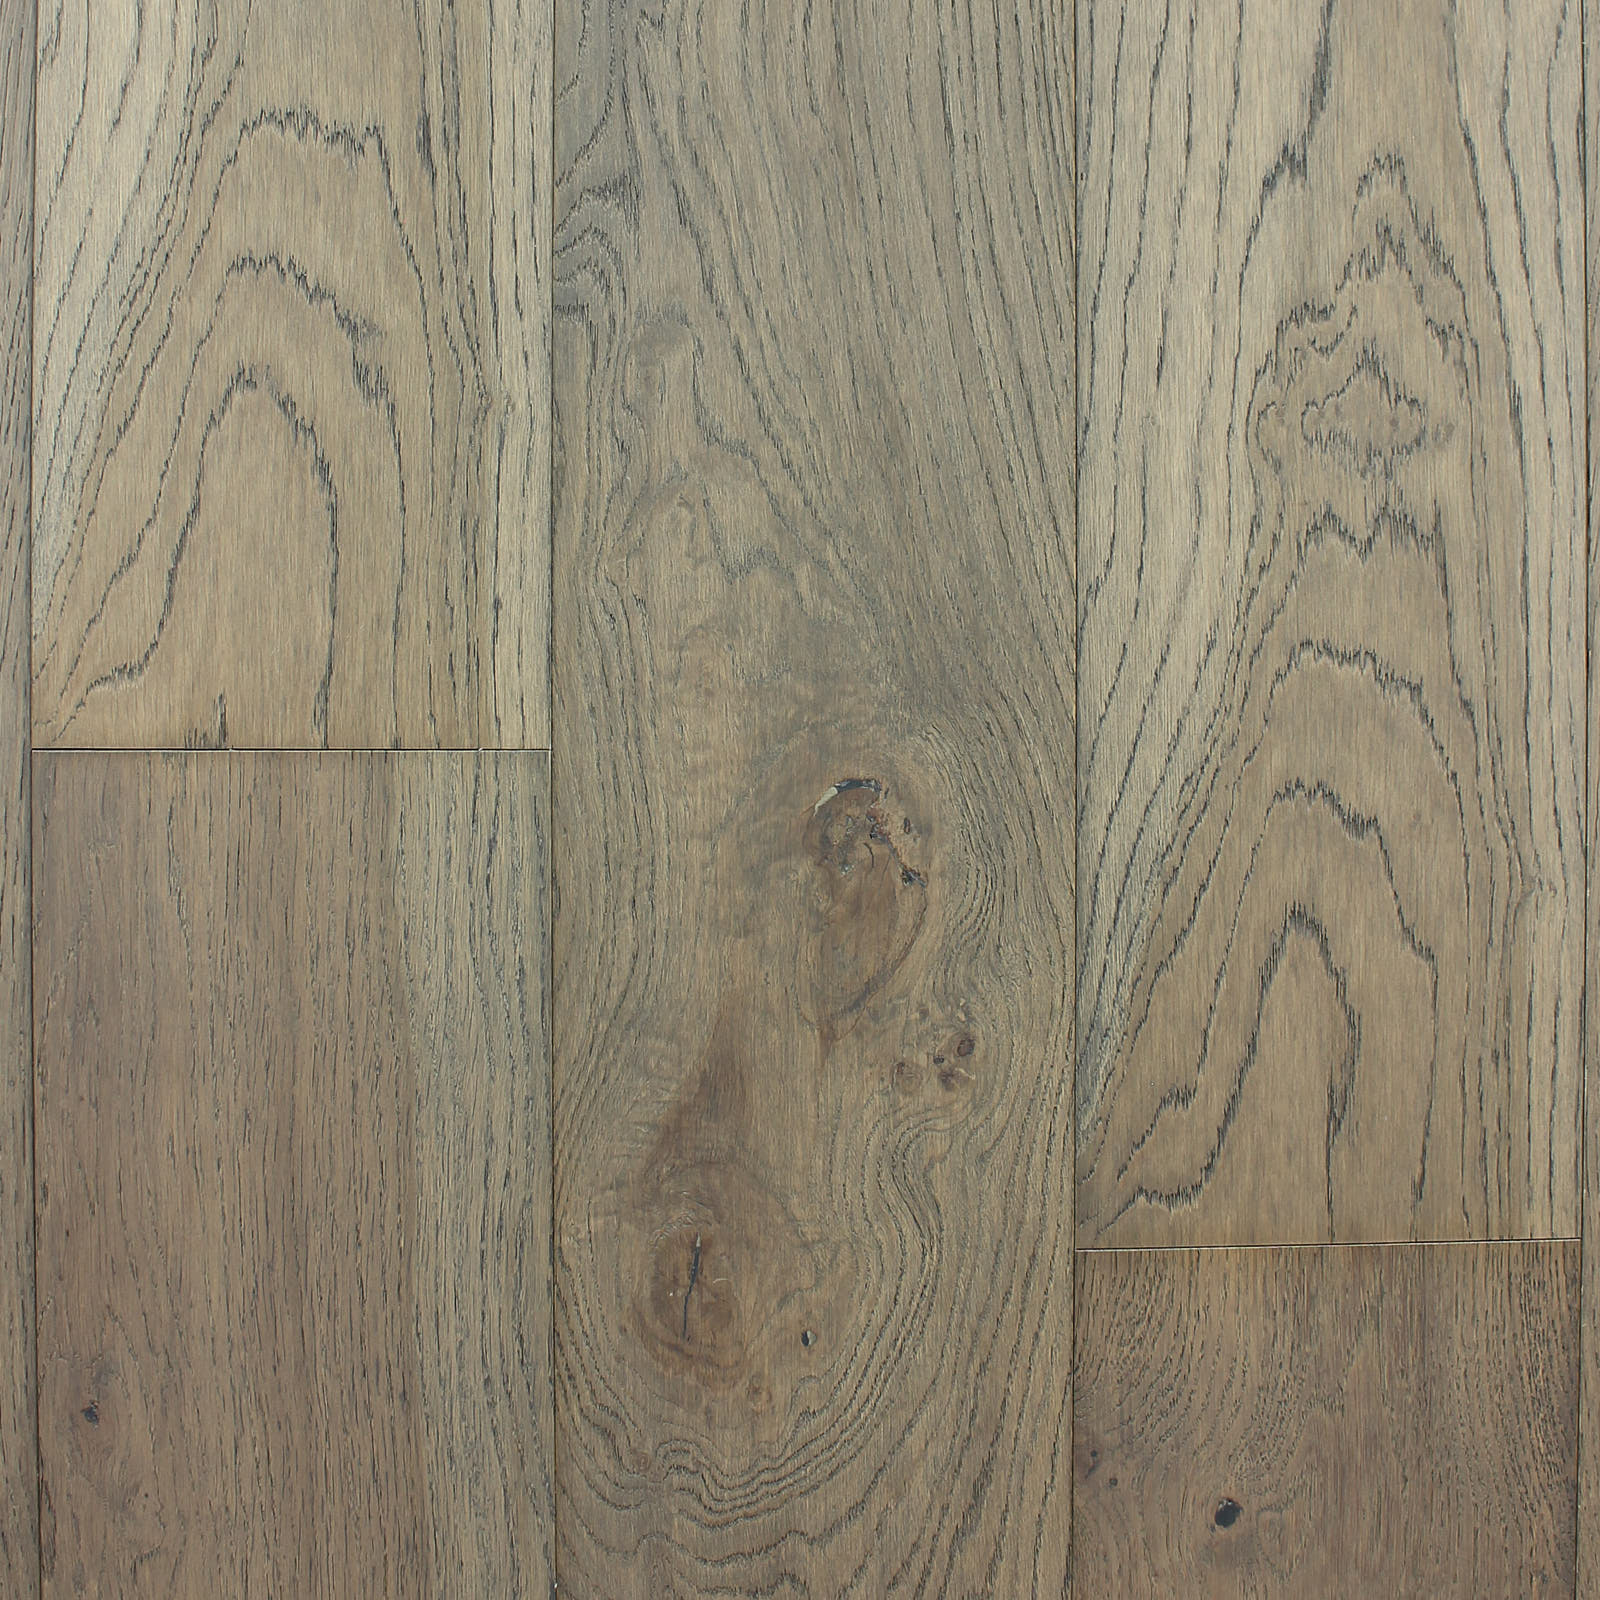 Elegant Tradition Palermo Aquawood Hardwood Flooring